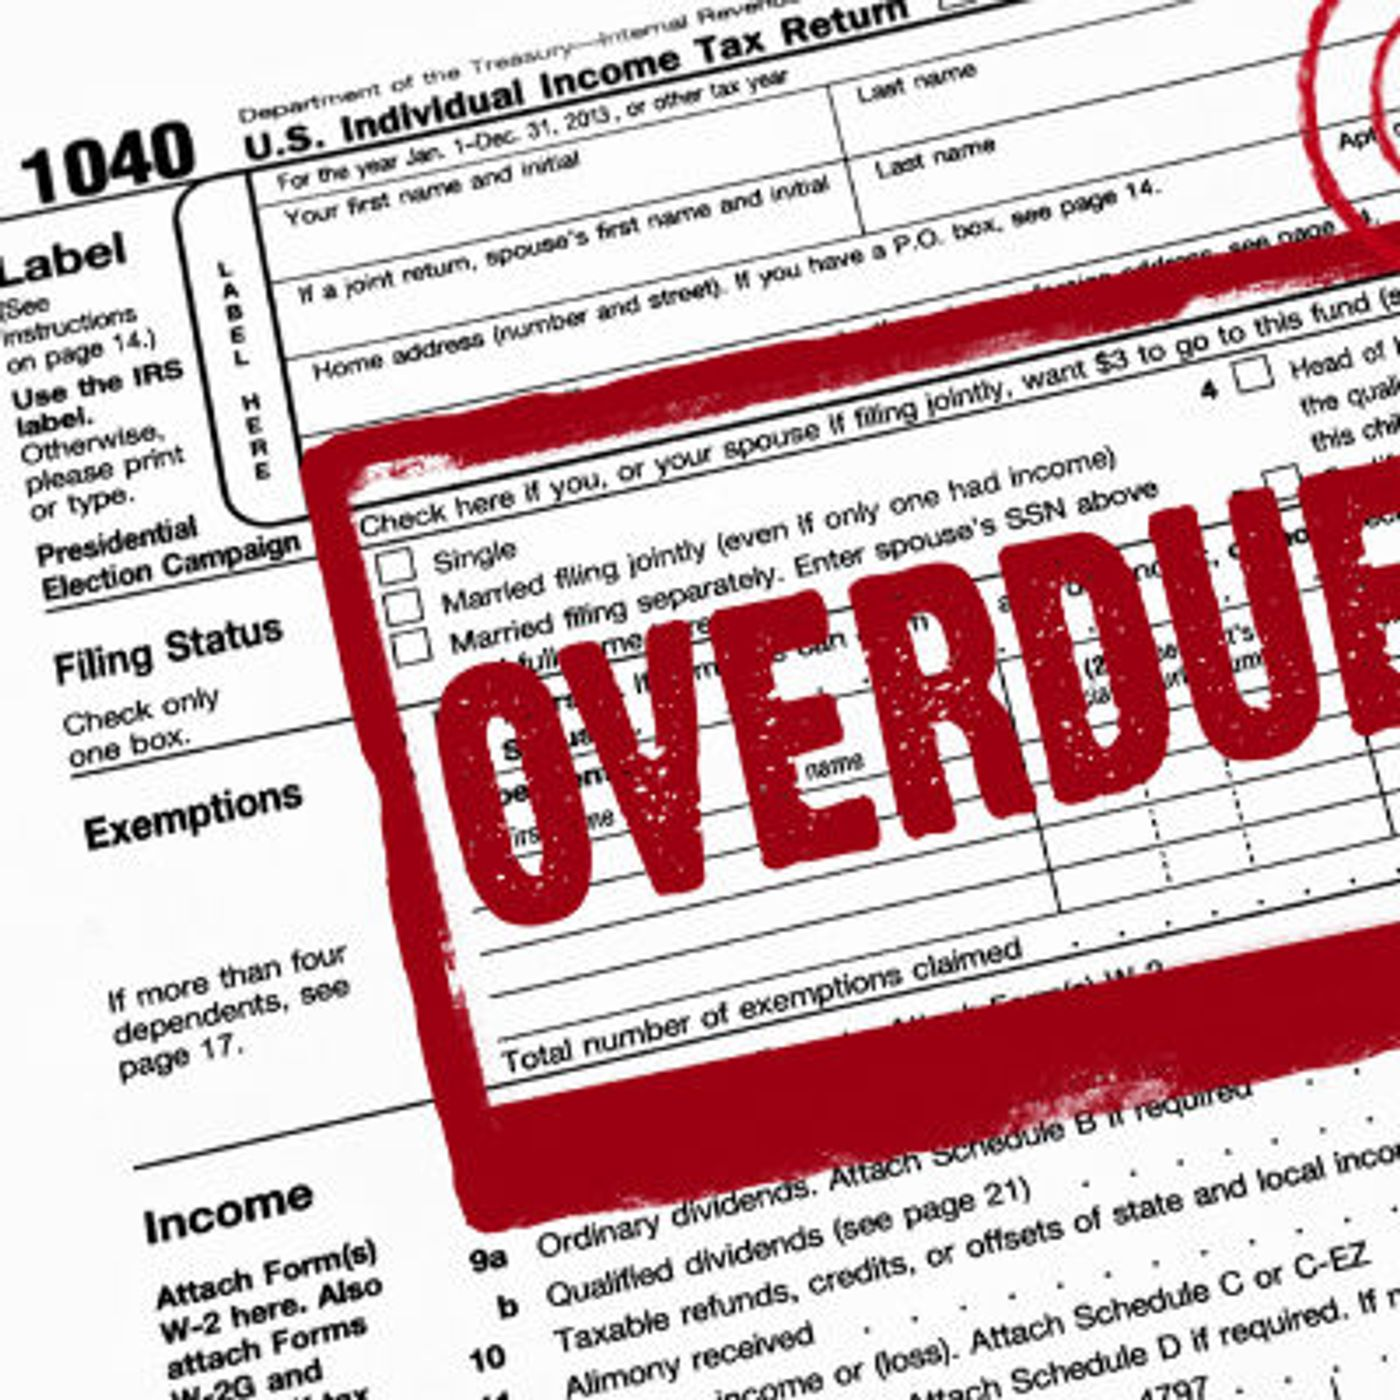 Conversations About Divorce - Divorce Can Make An IRS Problem Go From Bad To Worse